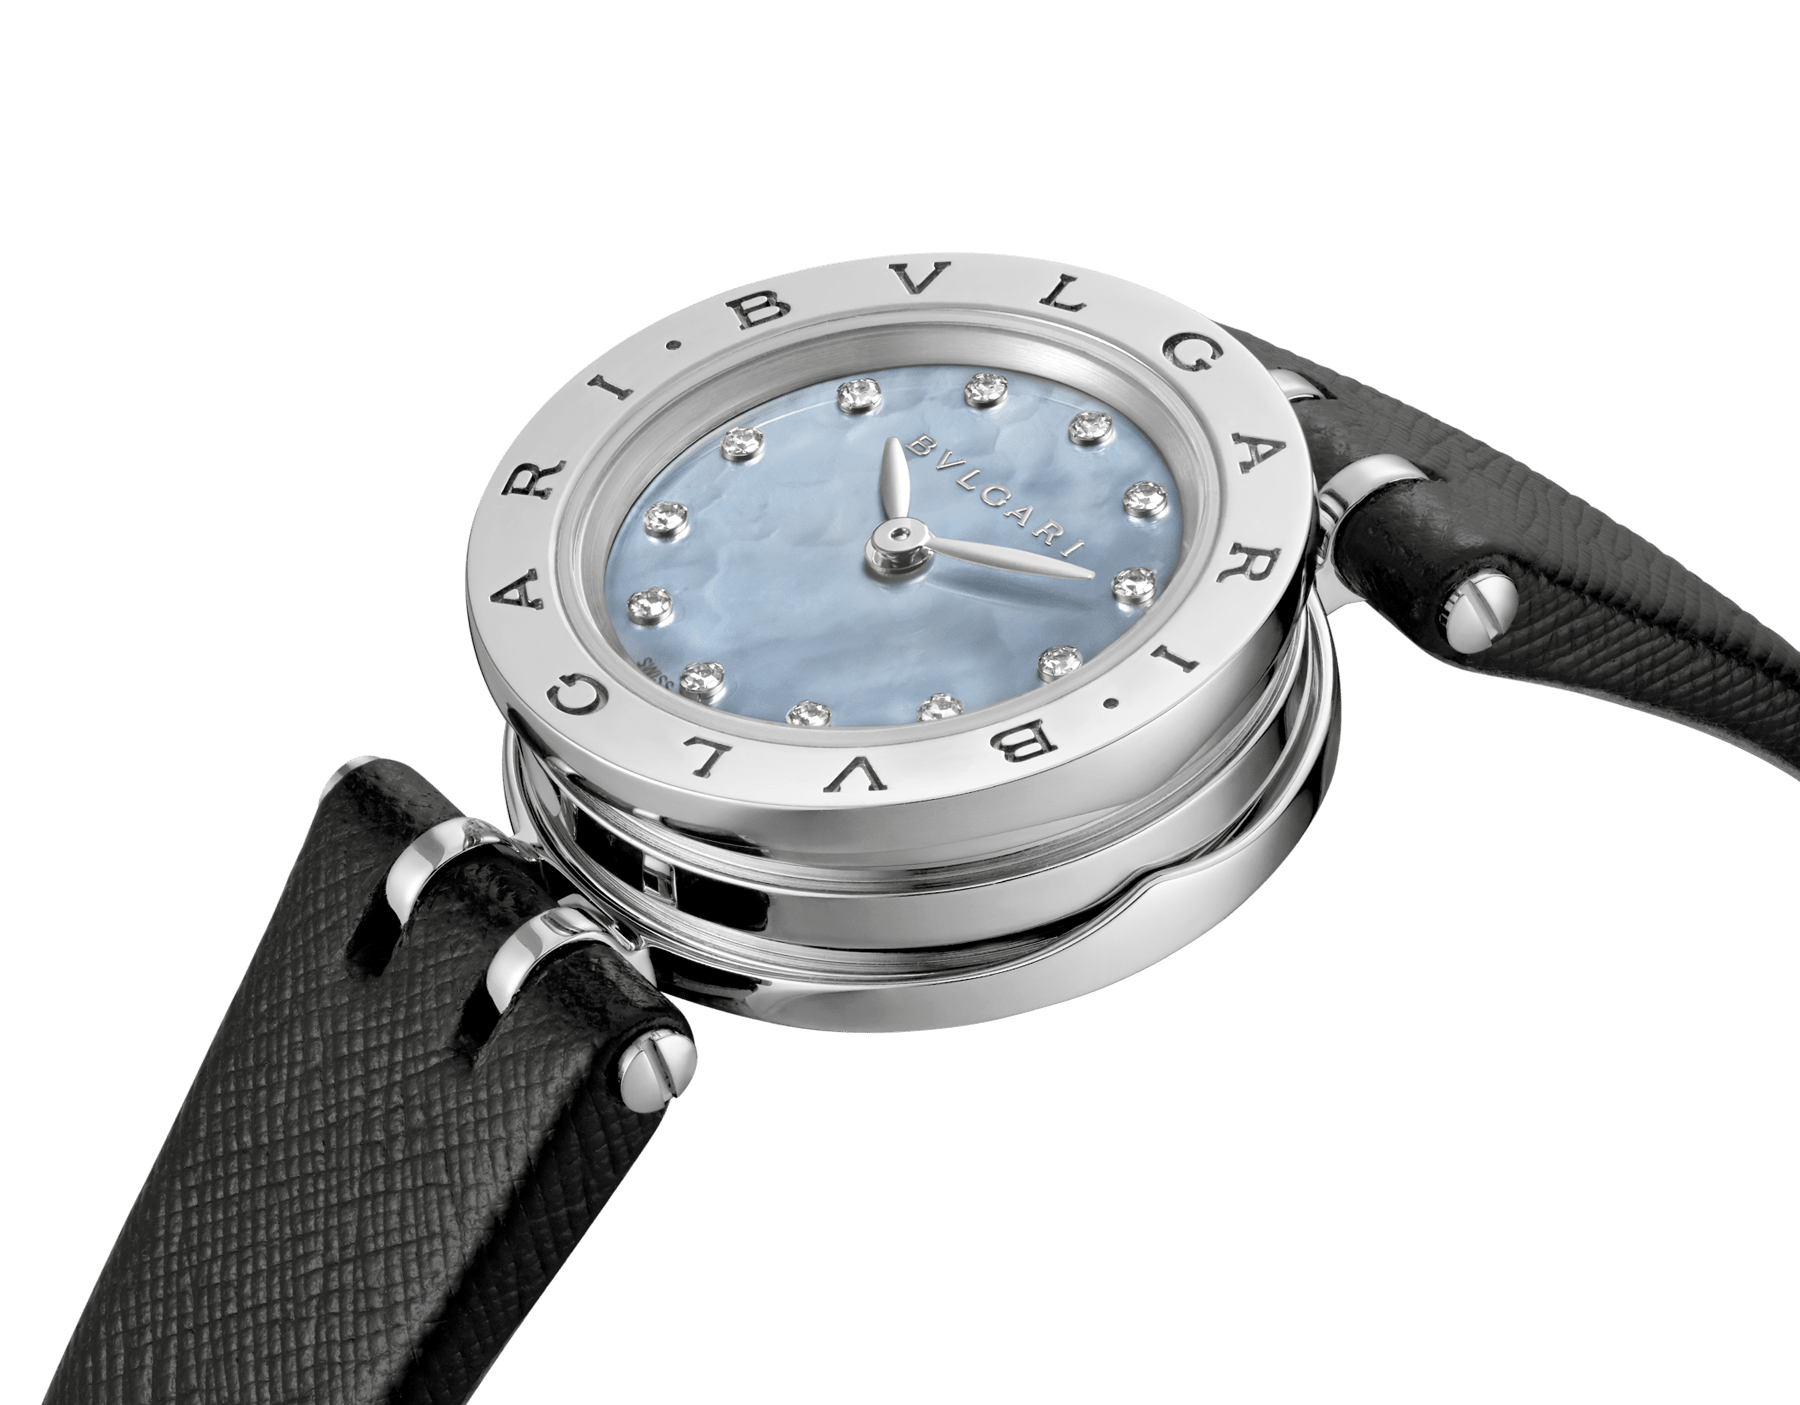 B.zero1 watch with stainless steel case, blue mother-of-pearl dial set with diamond indexes and black calf leather bracelet. 102472 image 2